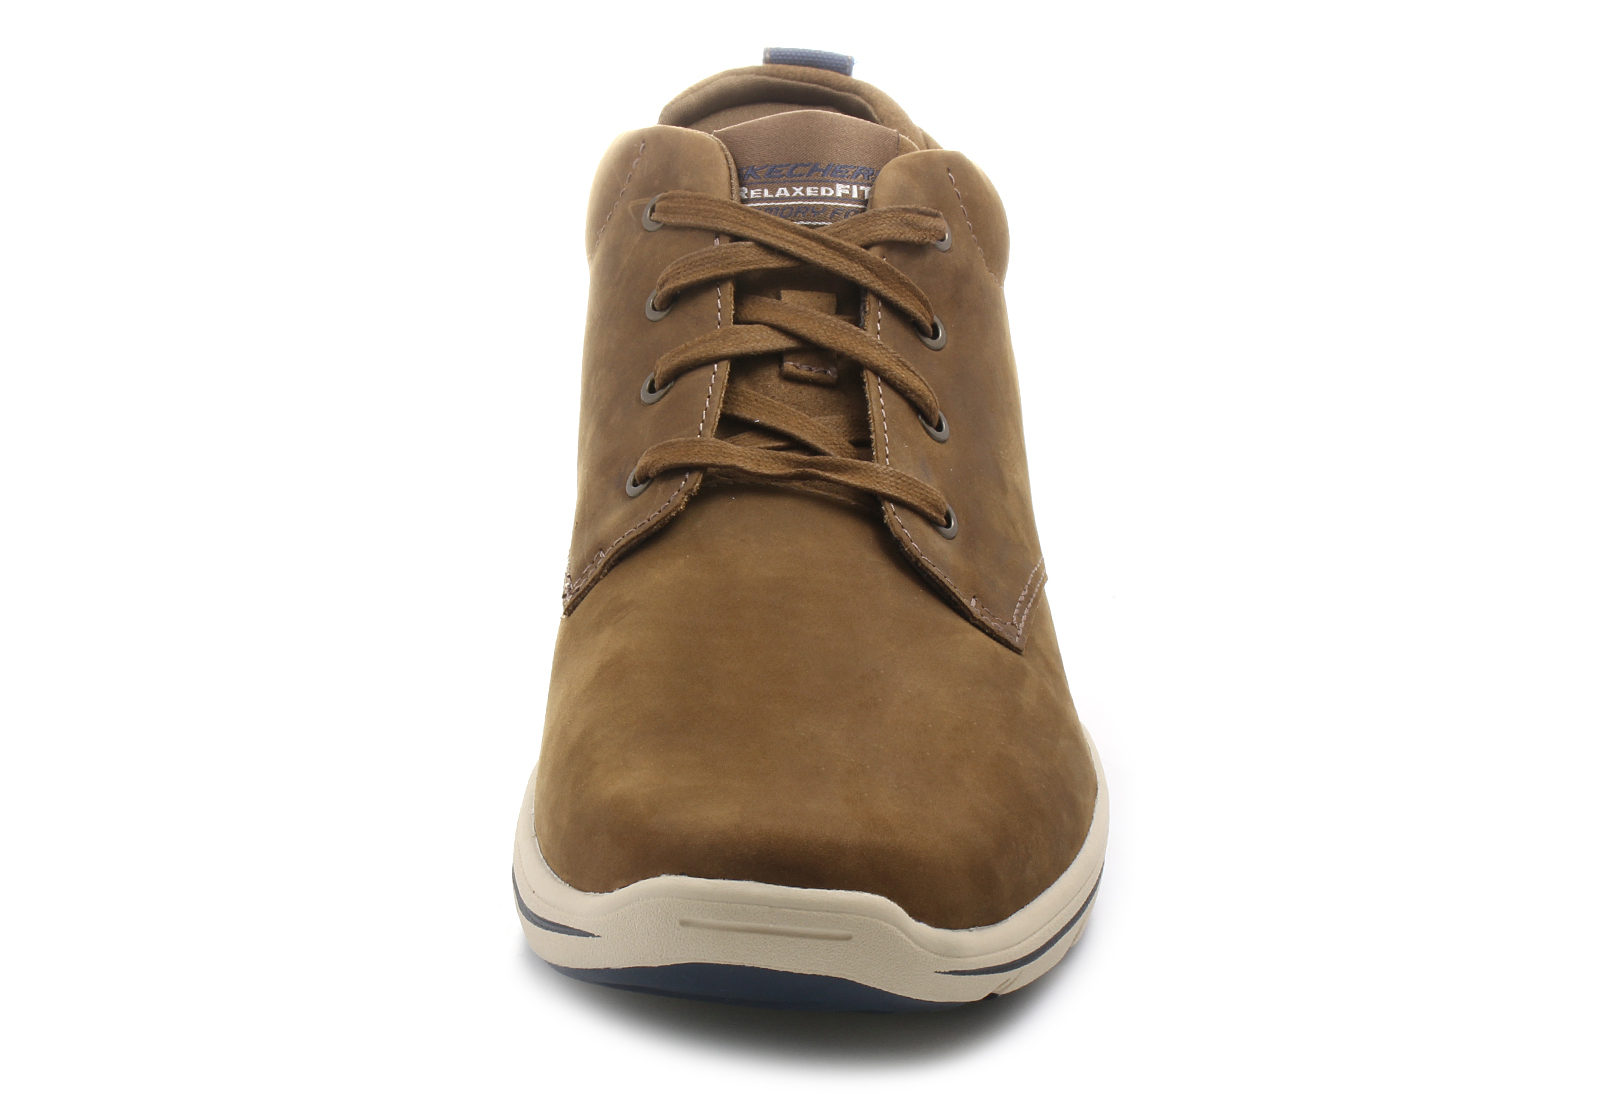 Skechers Shoes Harper Melden 64857 dsrt Online shop for sneakers, shoes and boots